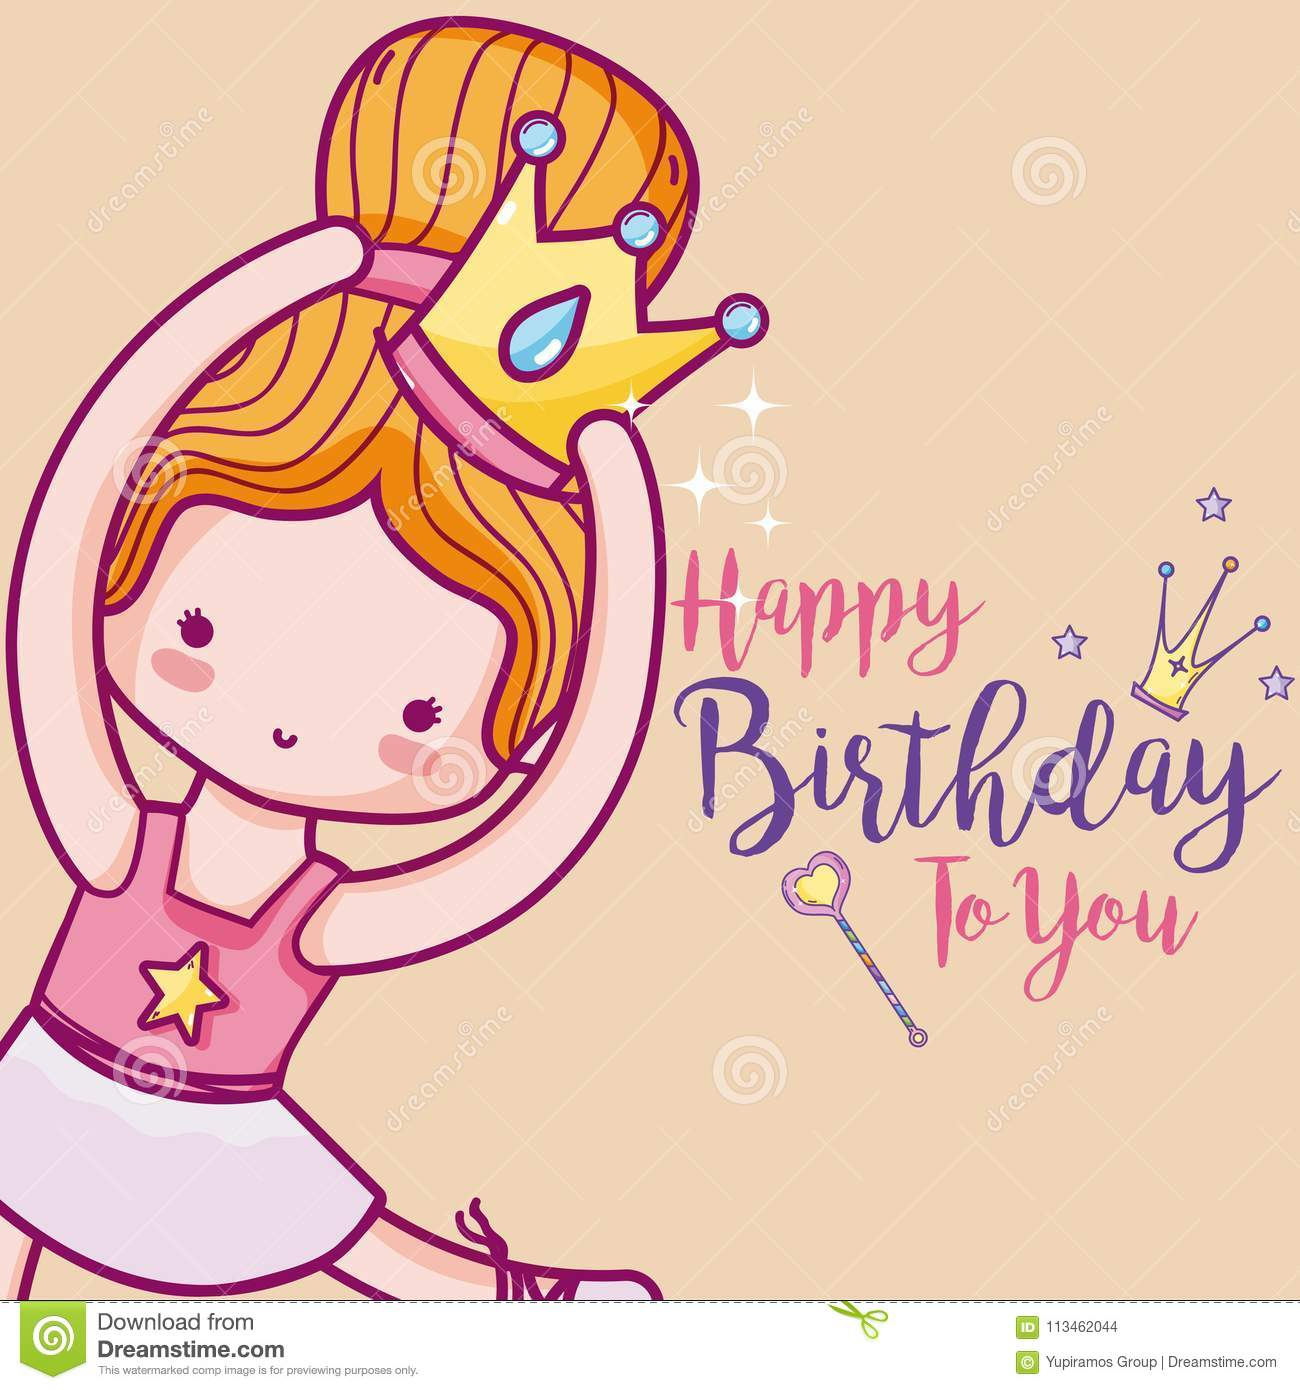 Happy Birthday With Cute Ballet Dancer Card Stock Vector